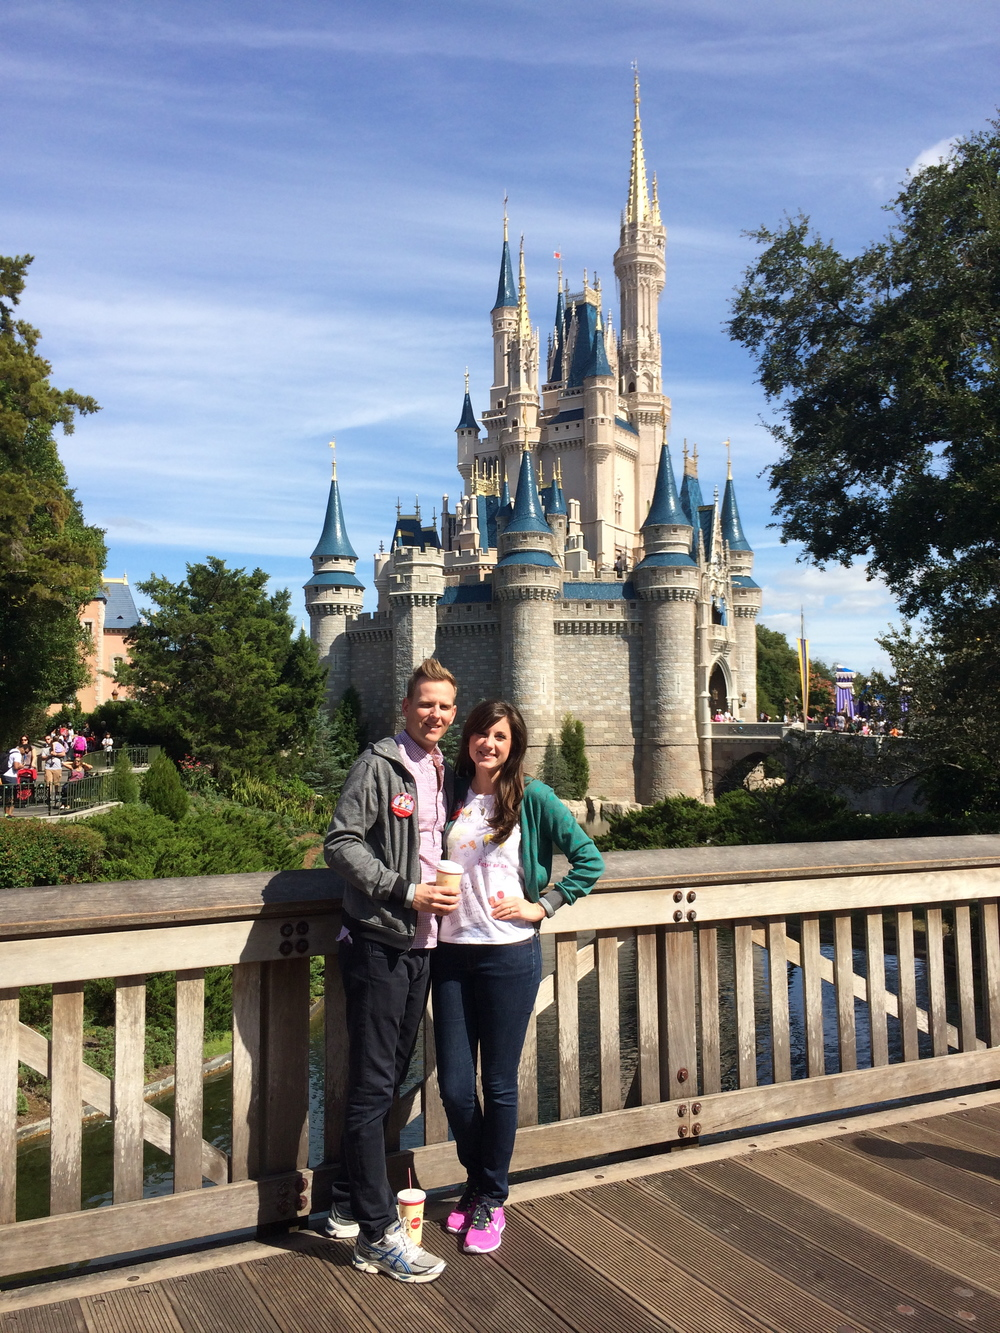 Enjoying the Magic Kingdom!